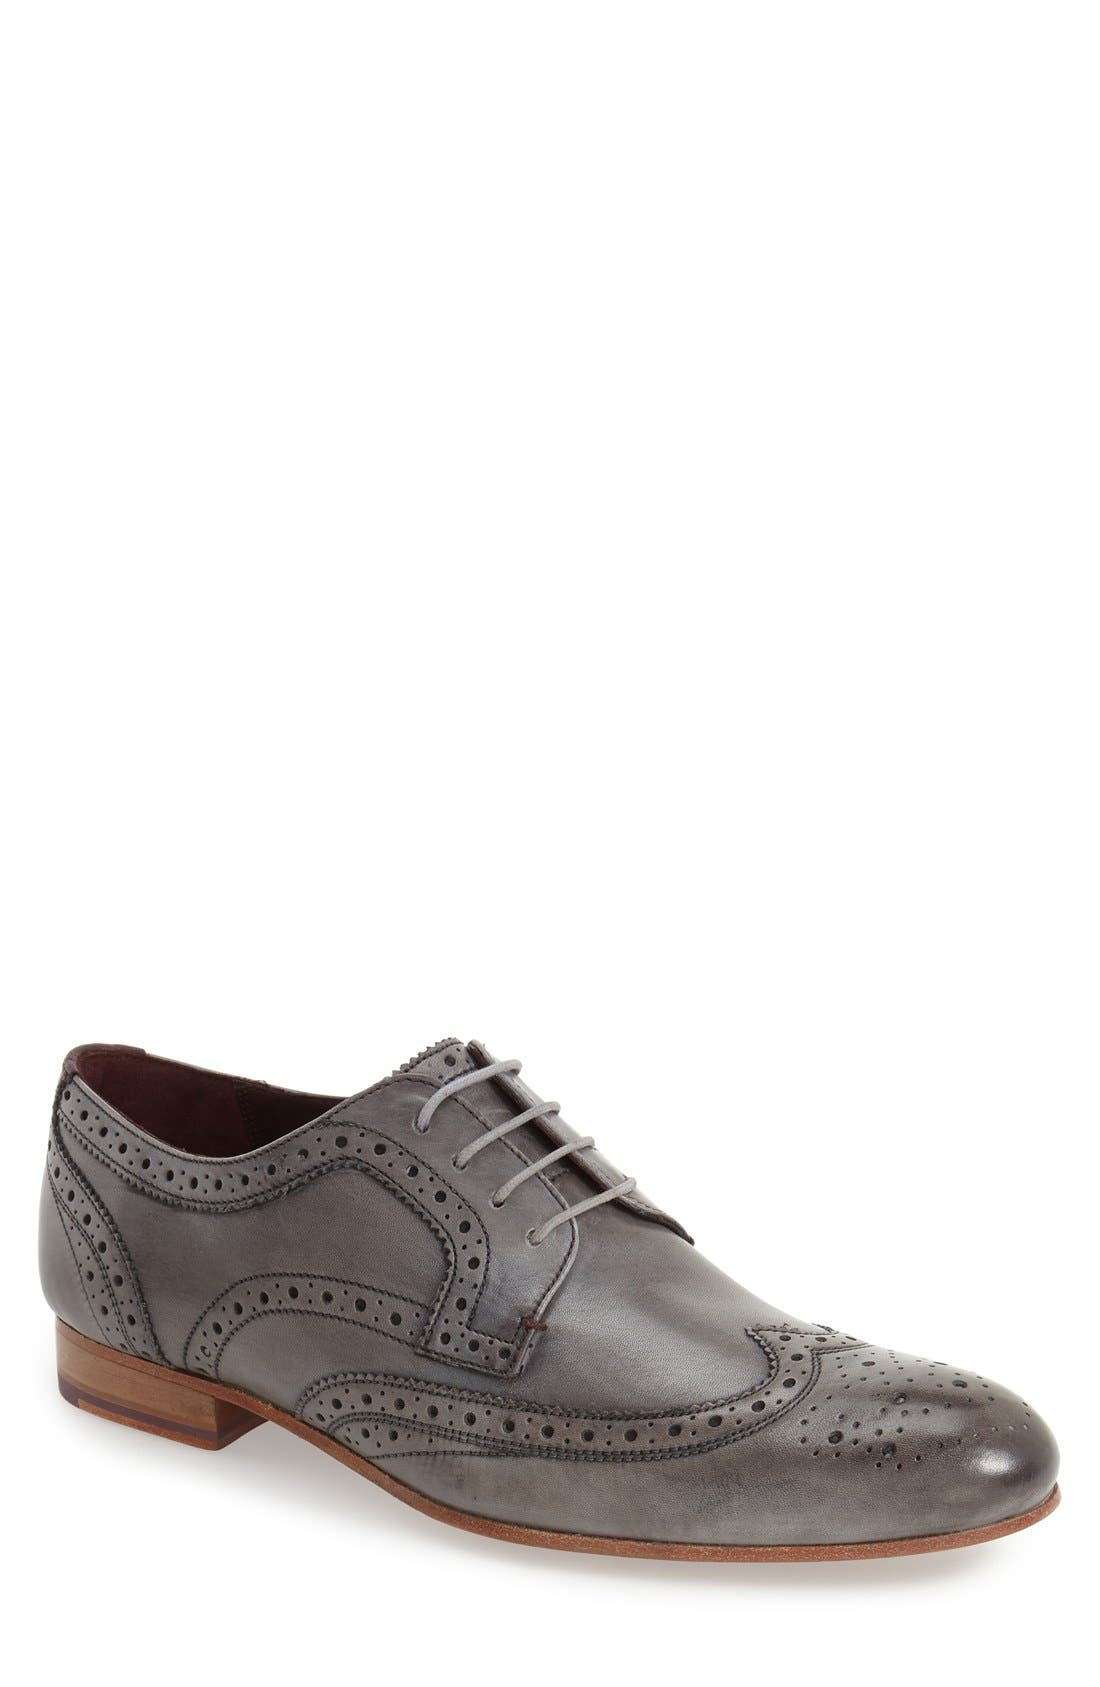 'Gryene' Wingtip Oxford,                             Main thumbnail 1, color,                             020